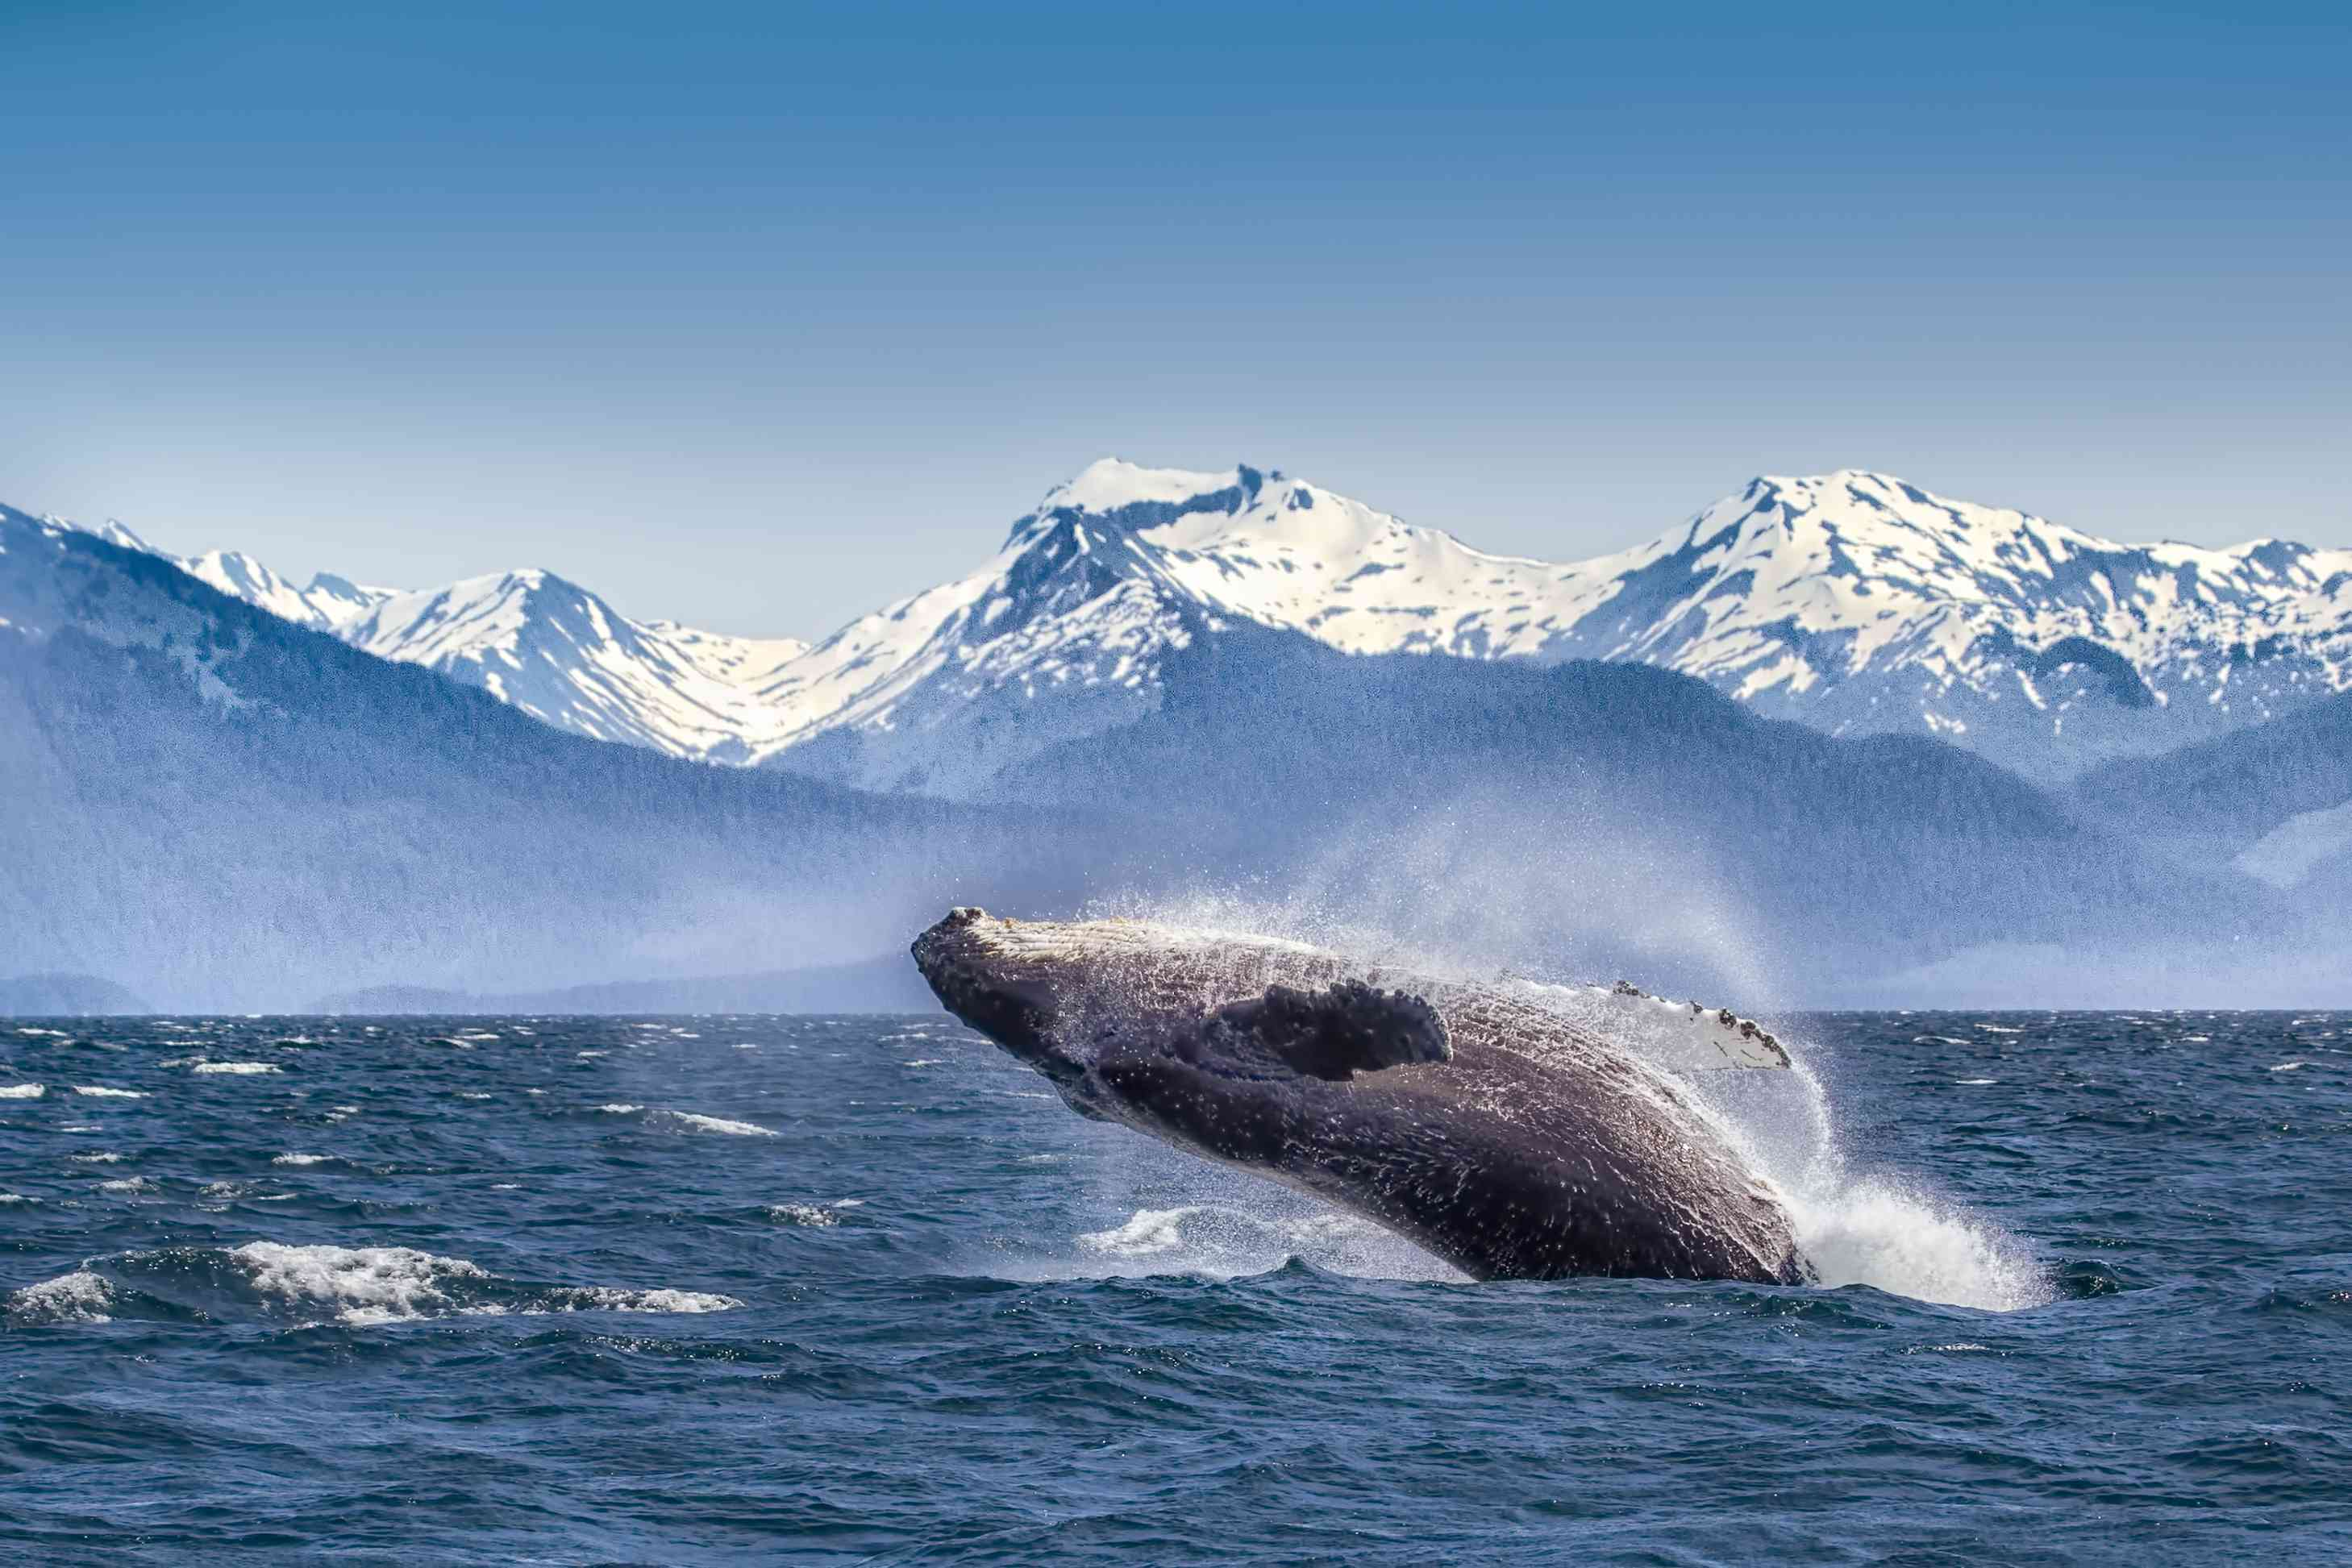 whale breaching with snow covered mountains in the background